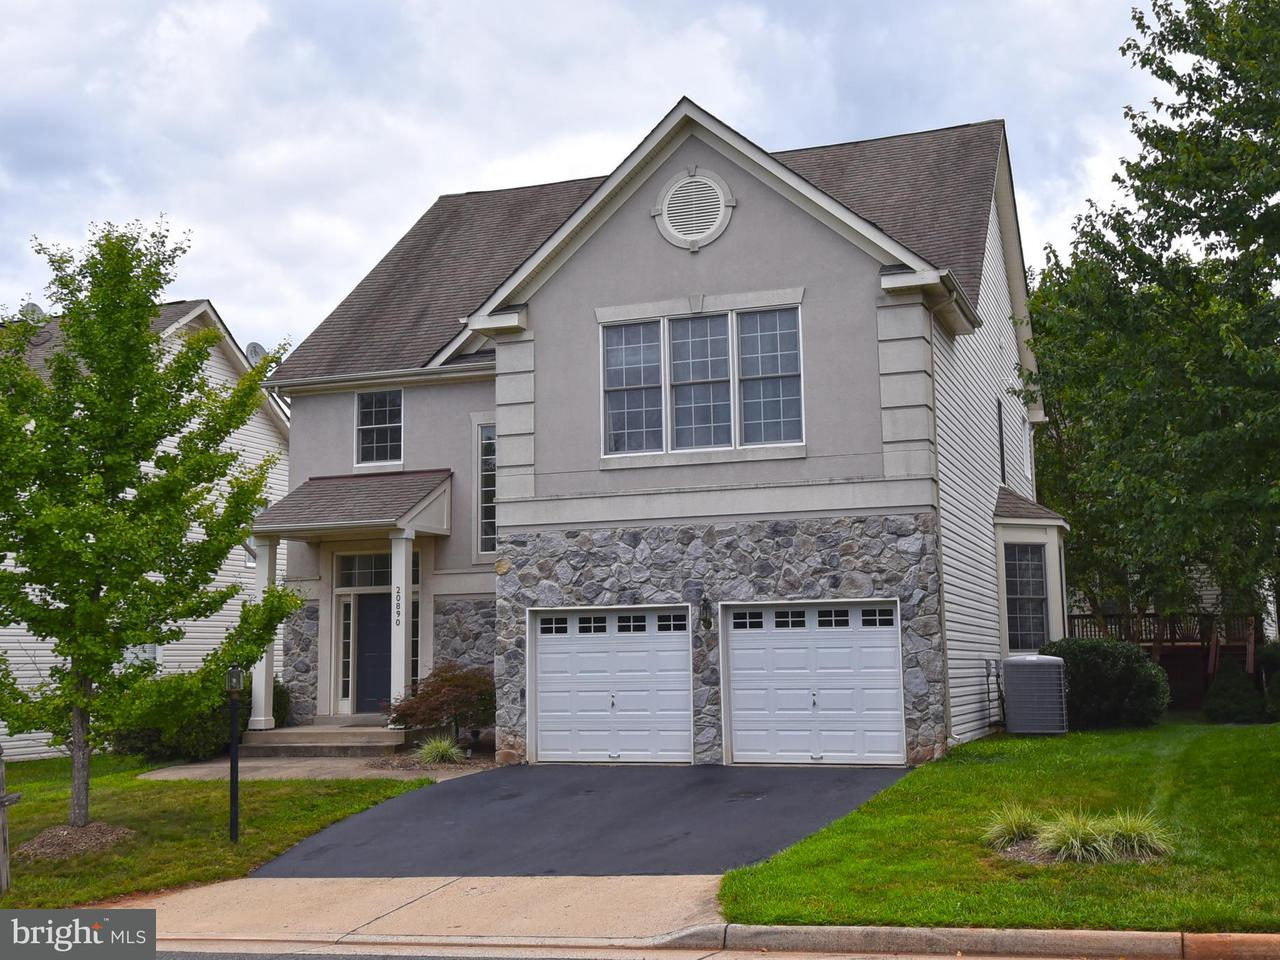 Single Family Home for Sale at 20890 SERENITY Court 20890 SERENITY Court Potomac Falls, Virginia 20165 United States